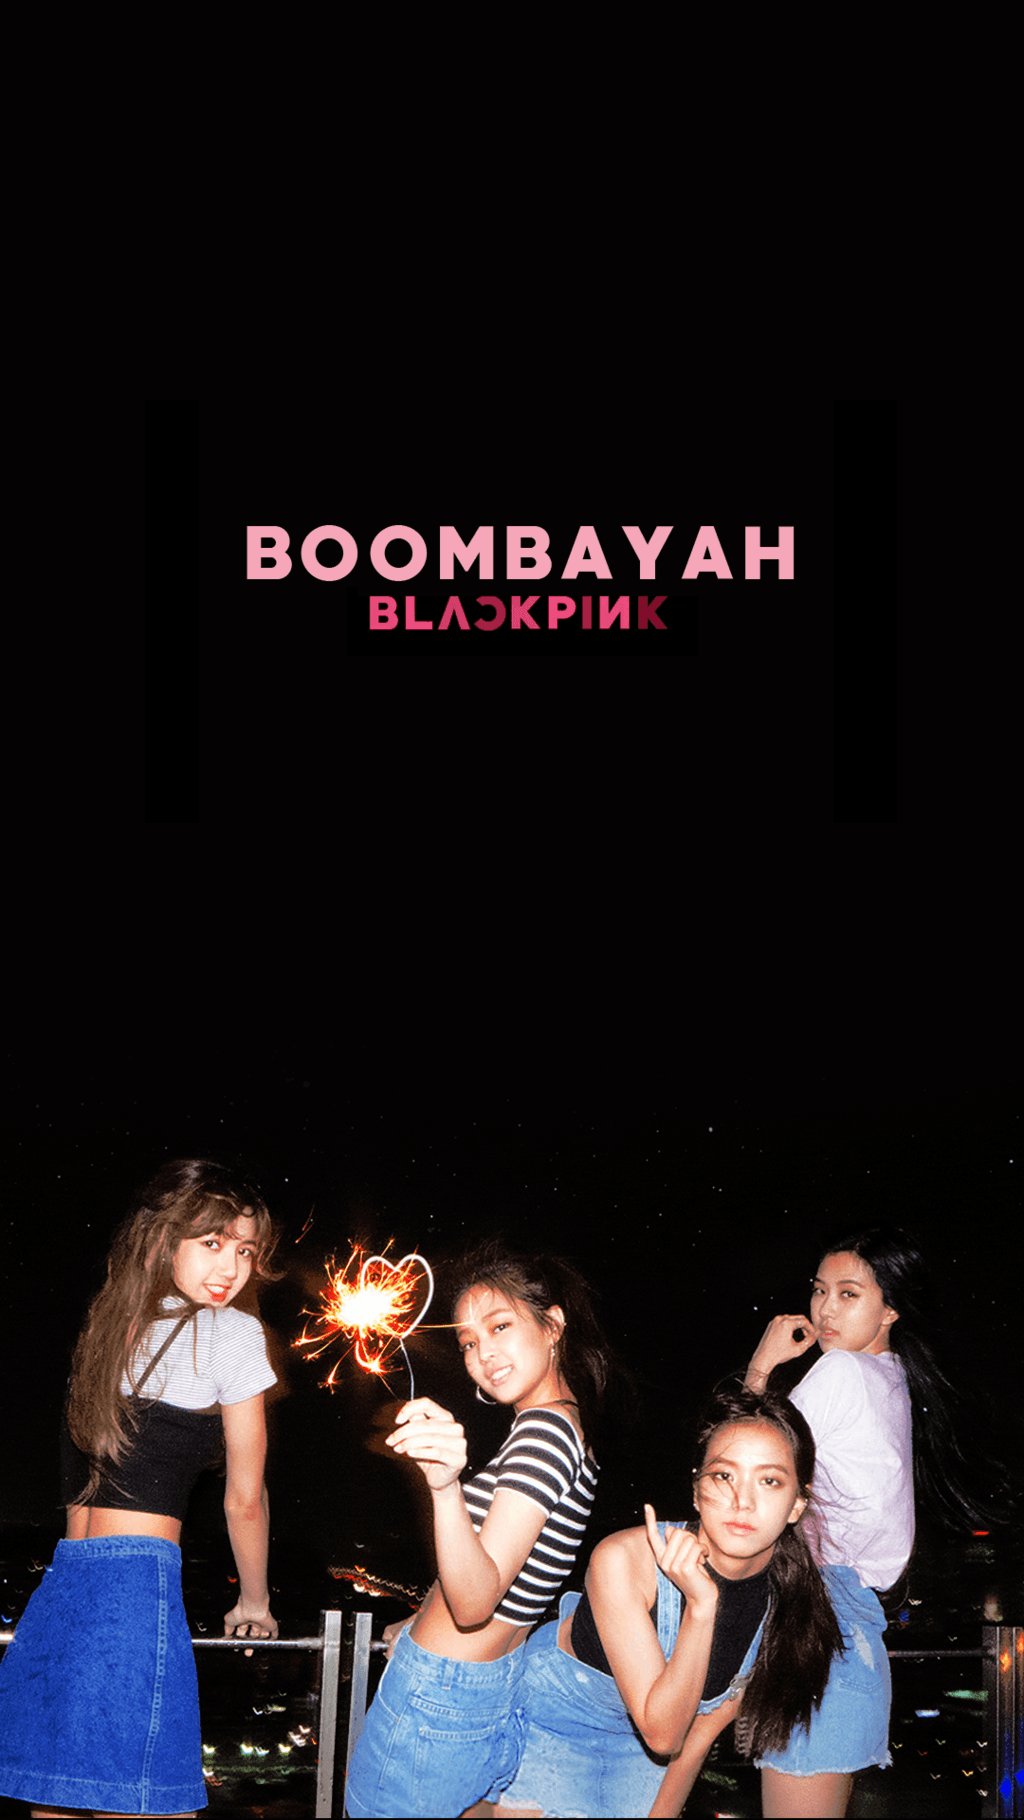 Colouring Your Phone and Desktop With Blackpink's Logo and ...